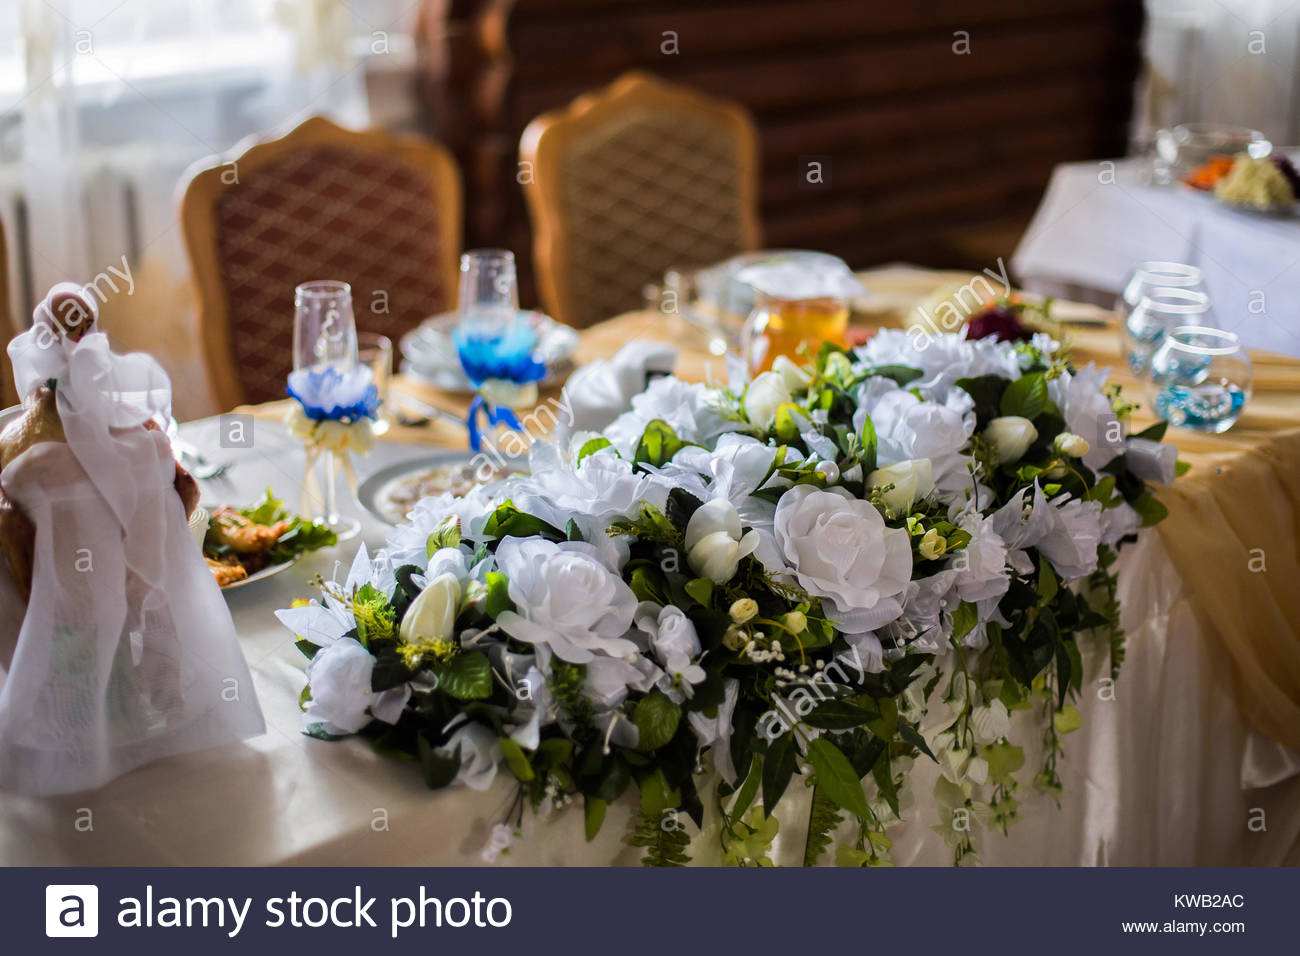 white flowers, wedding accessories, wedding preparation, decorated wedding table with flowers, wedding flowers, - Stock Image